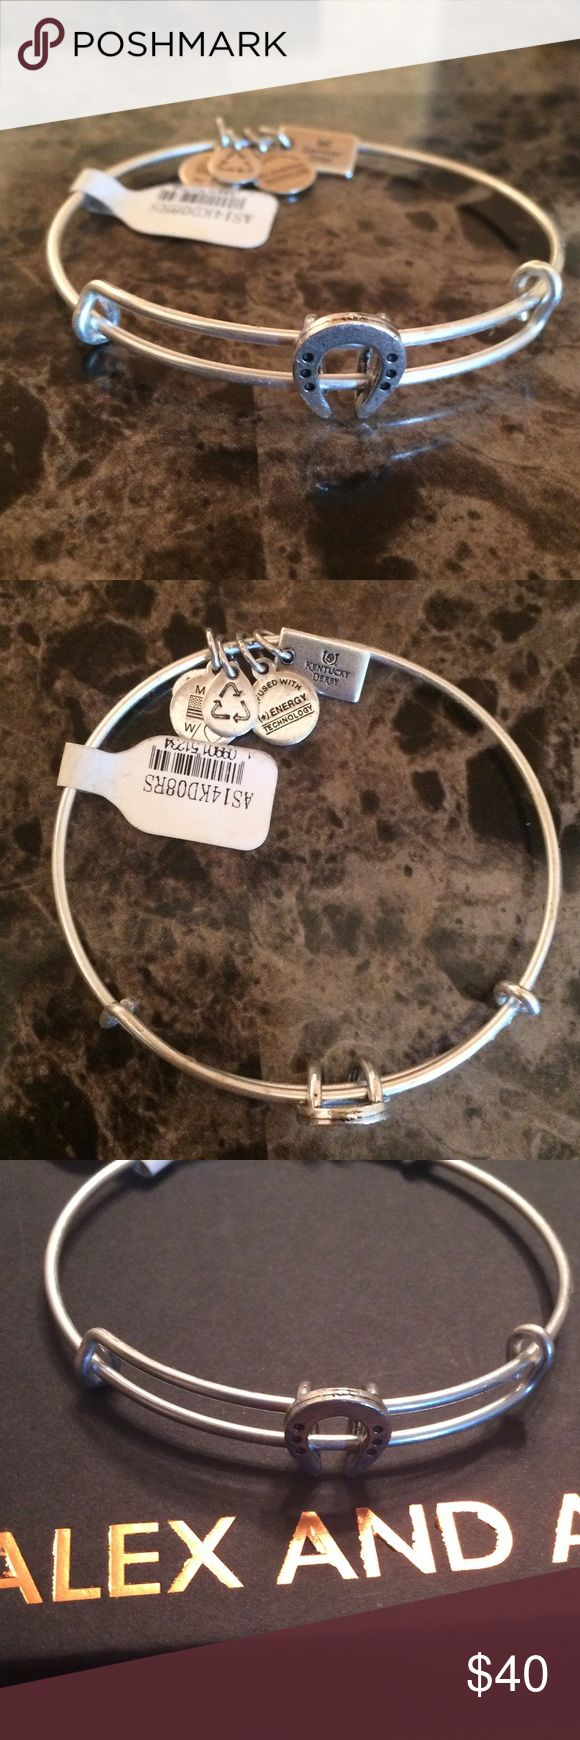 NWT rare Alex and Ani Horseshoe Bangle Silver NWT Retired, rare Alex and Ani. Horseshoe in silver. Charm doesn't dangle, it slides on the bangle. Comes from the Kentucky Derby Collection. Only 1 left. Comes with box and meaning card. Alex & Ani Jewelry Bracelets